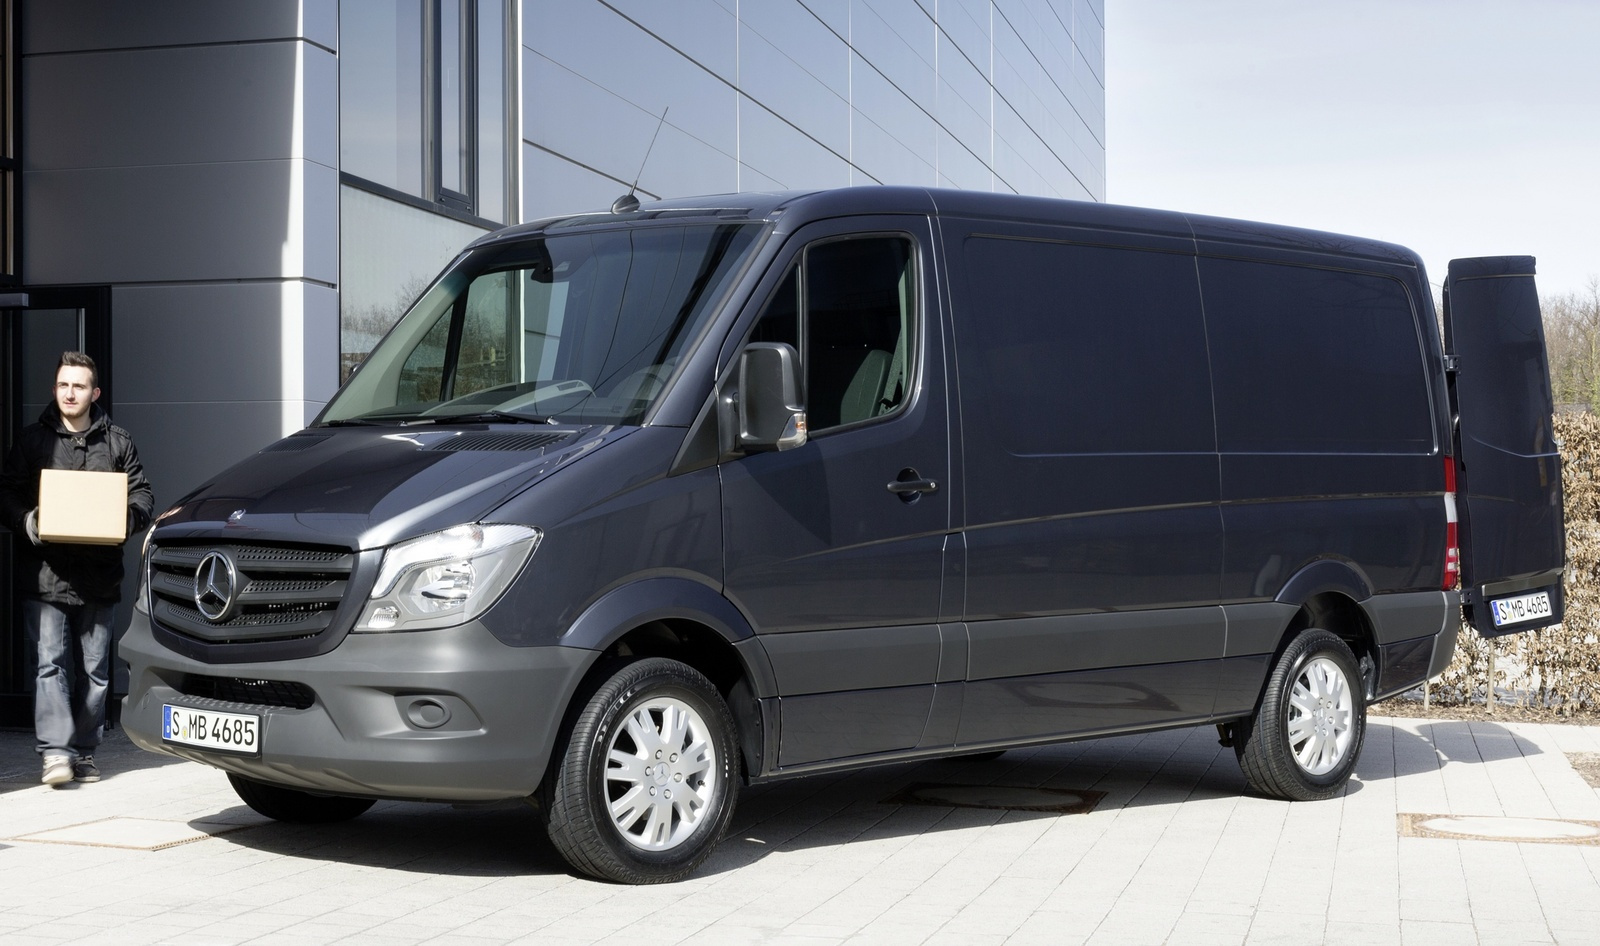 014145237758 2014 Mercedes-Benz Sprinter - Overview - CarGurus